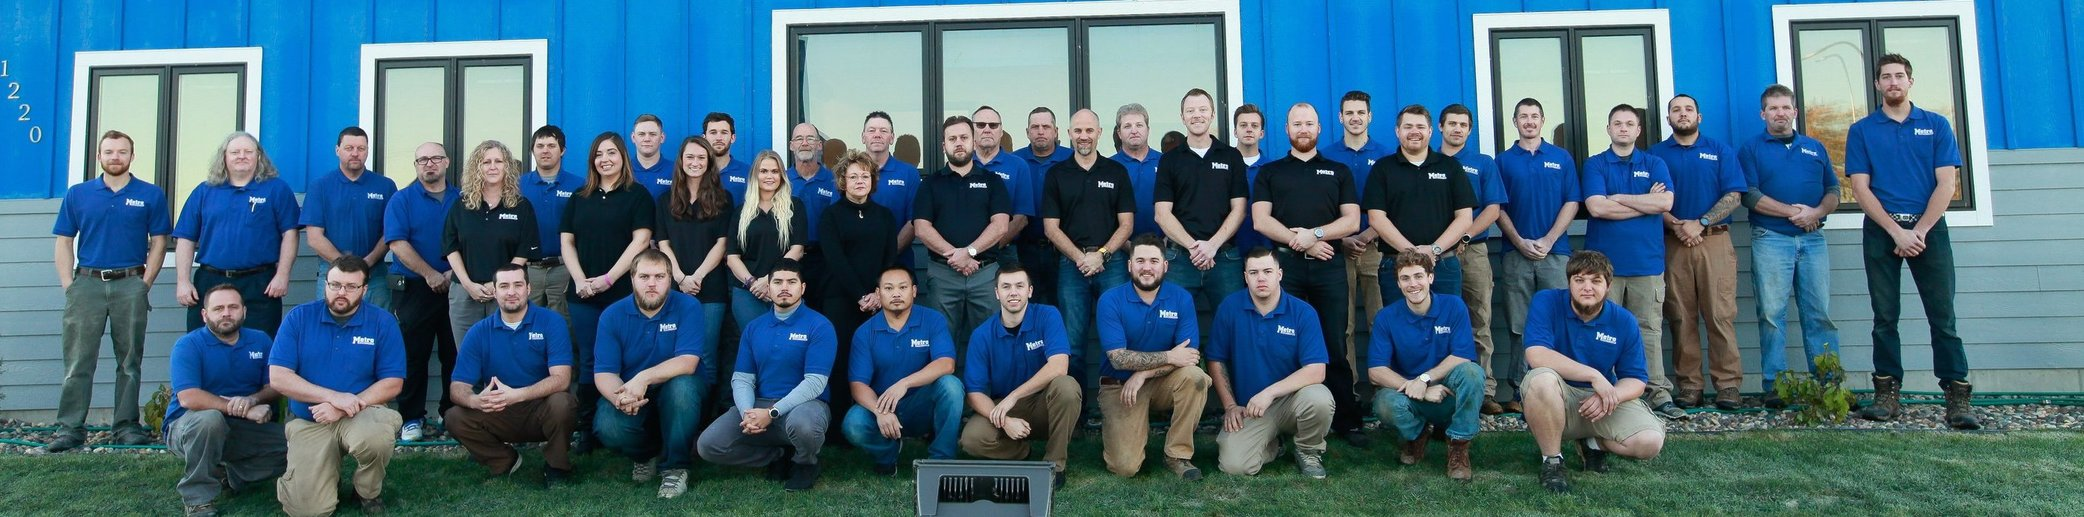 metro heating and cooling staff photo